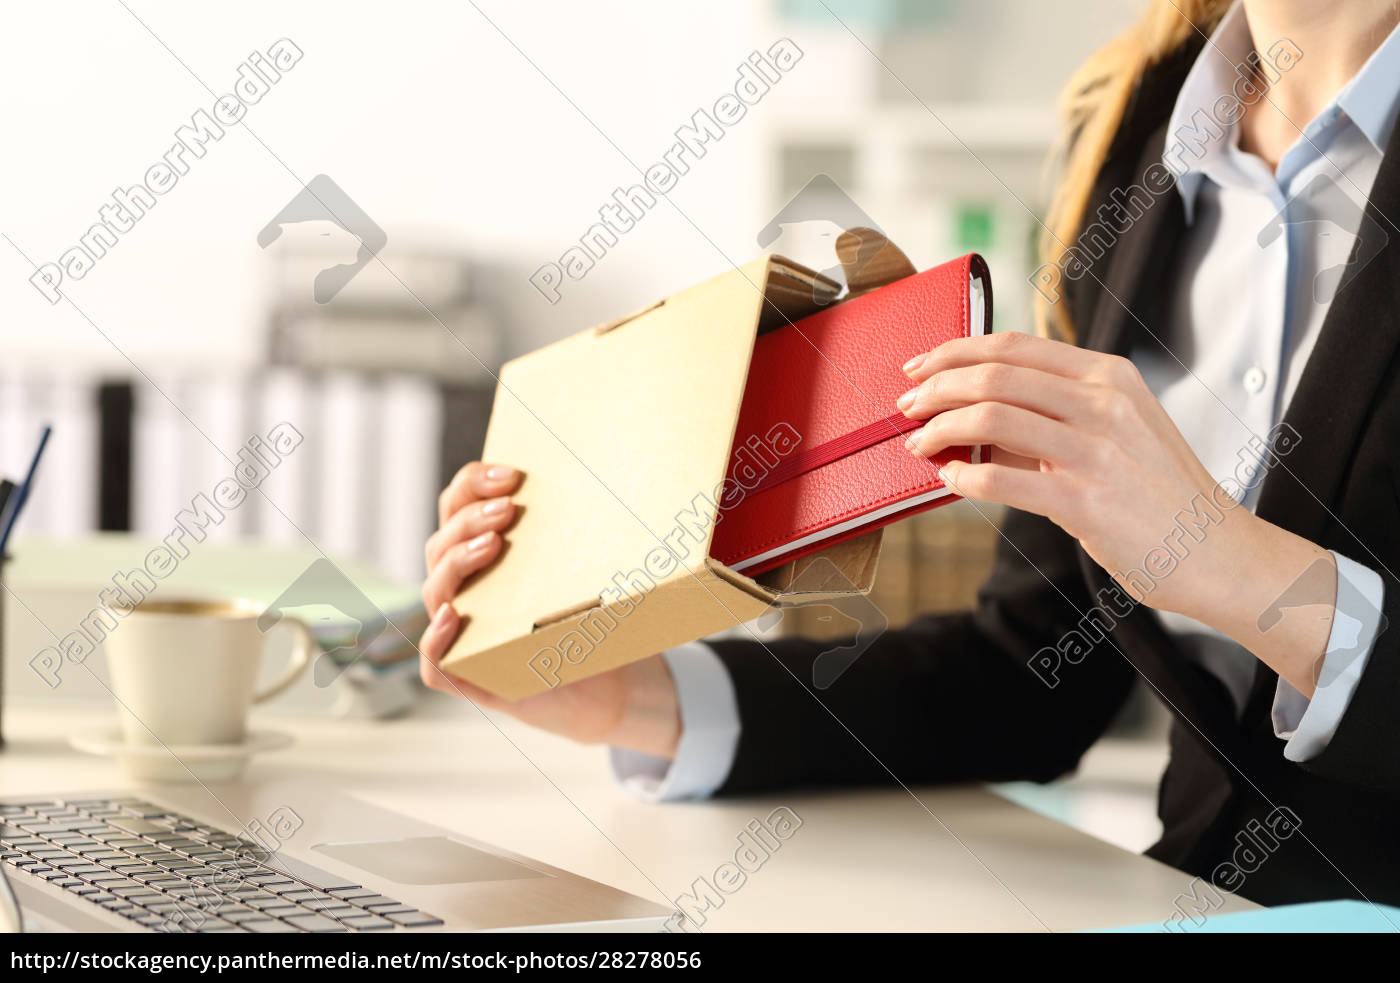 executive, hands, unboxing, package, with, agenda - 28278056